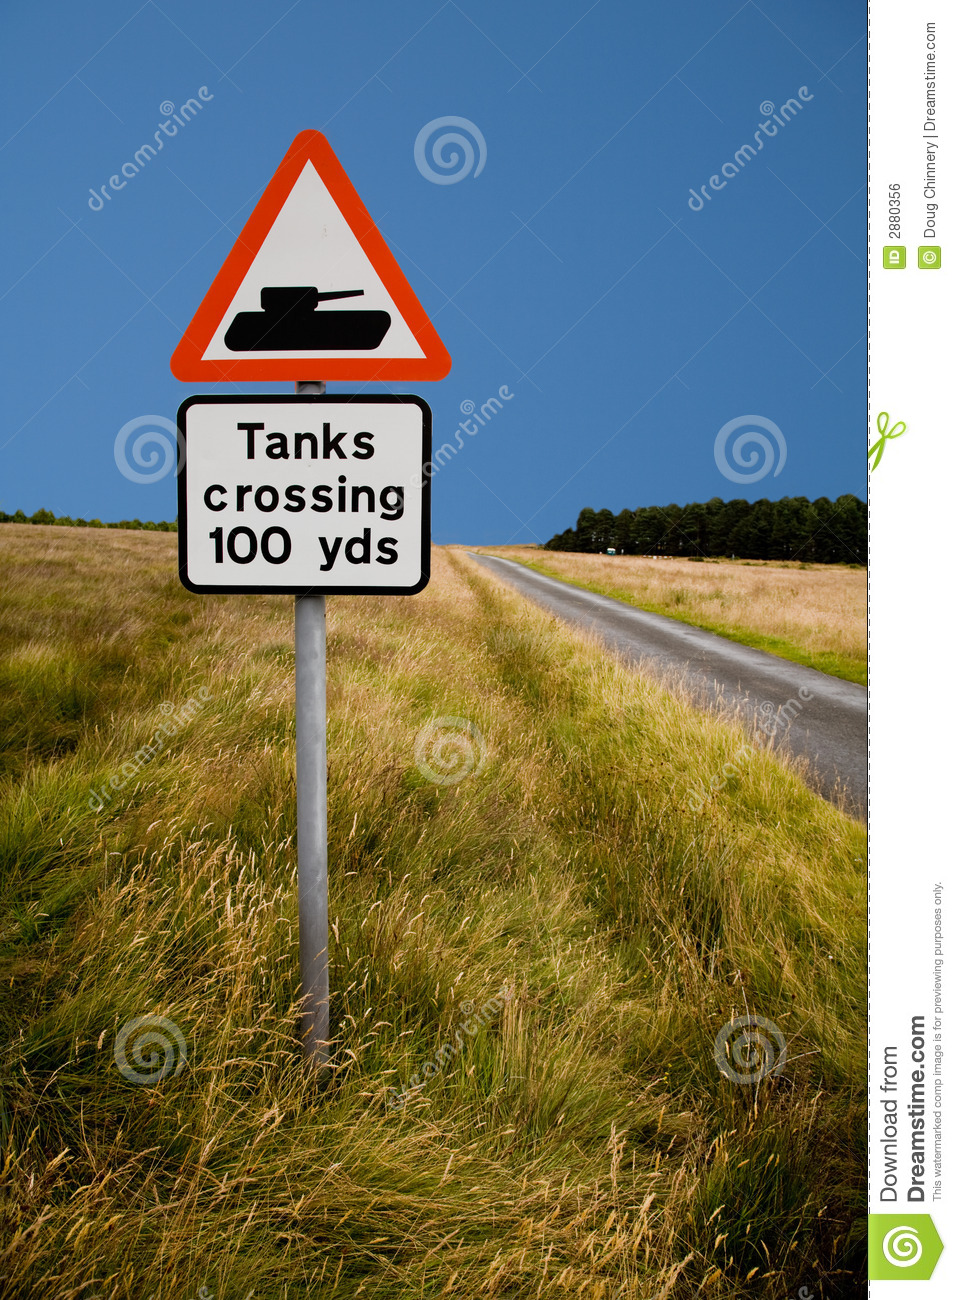 tank crossing road sign royalty free stock image